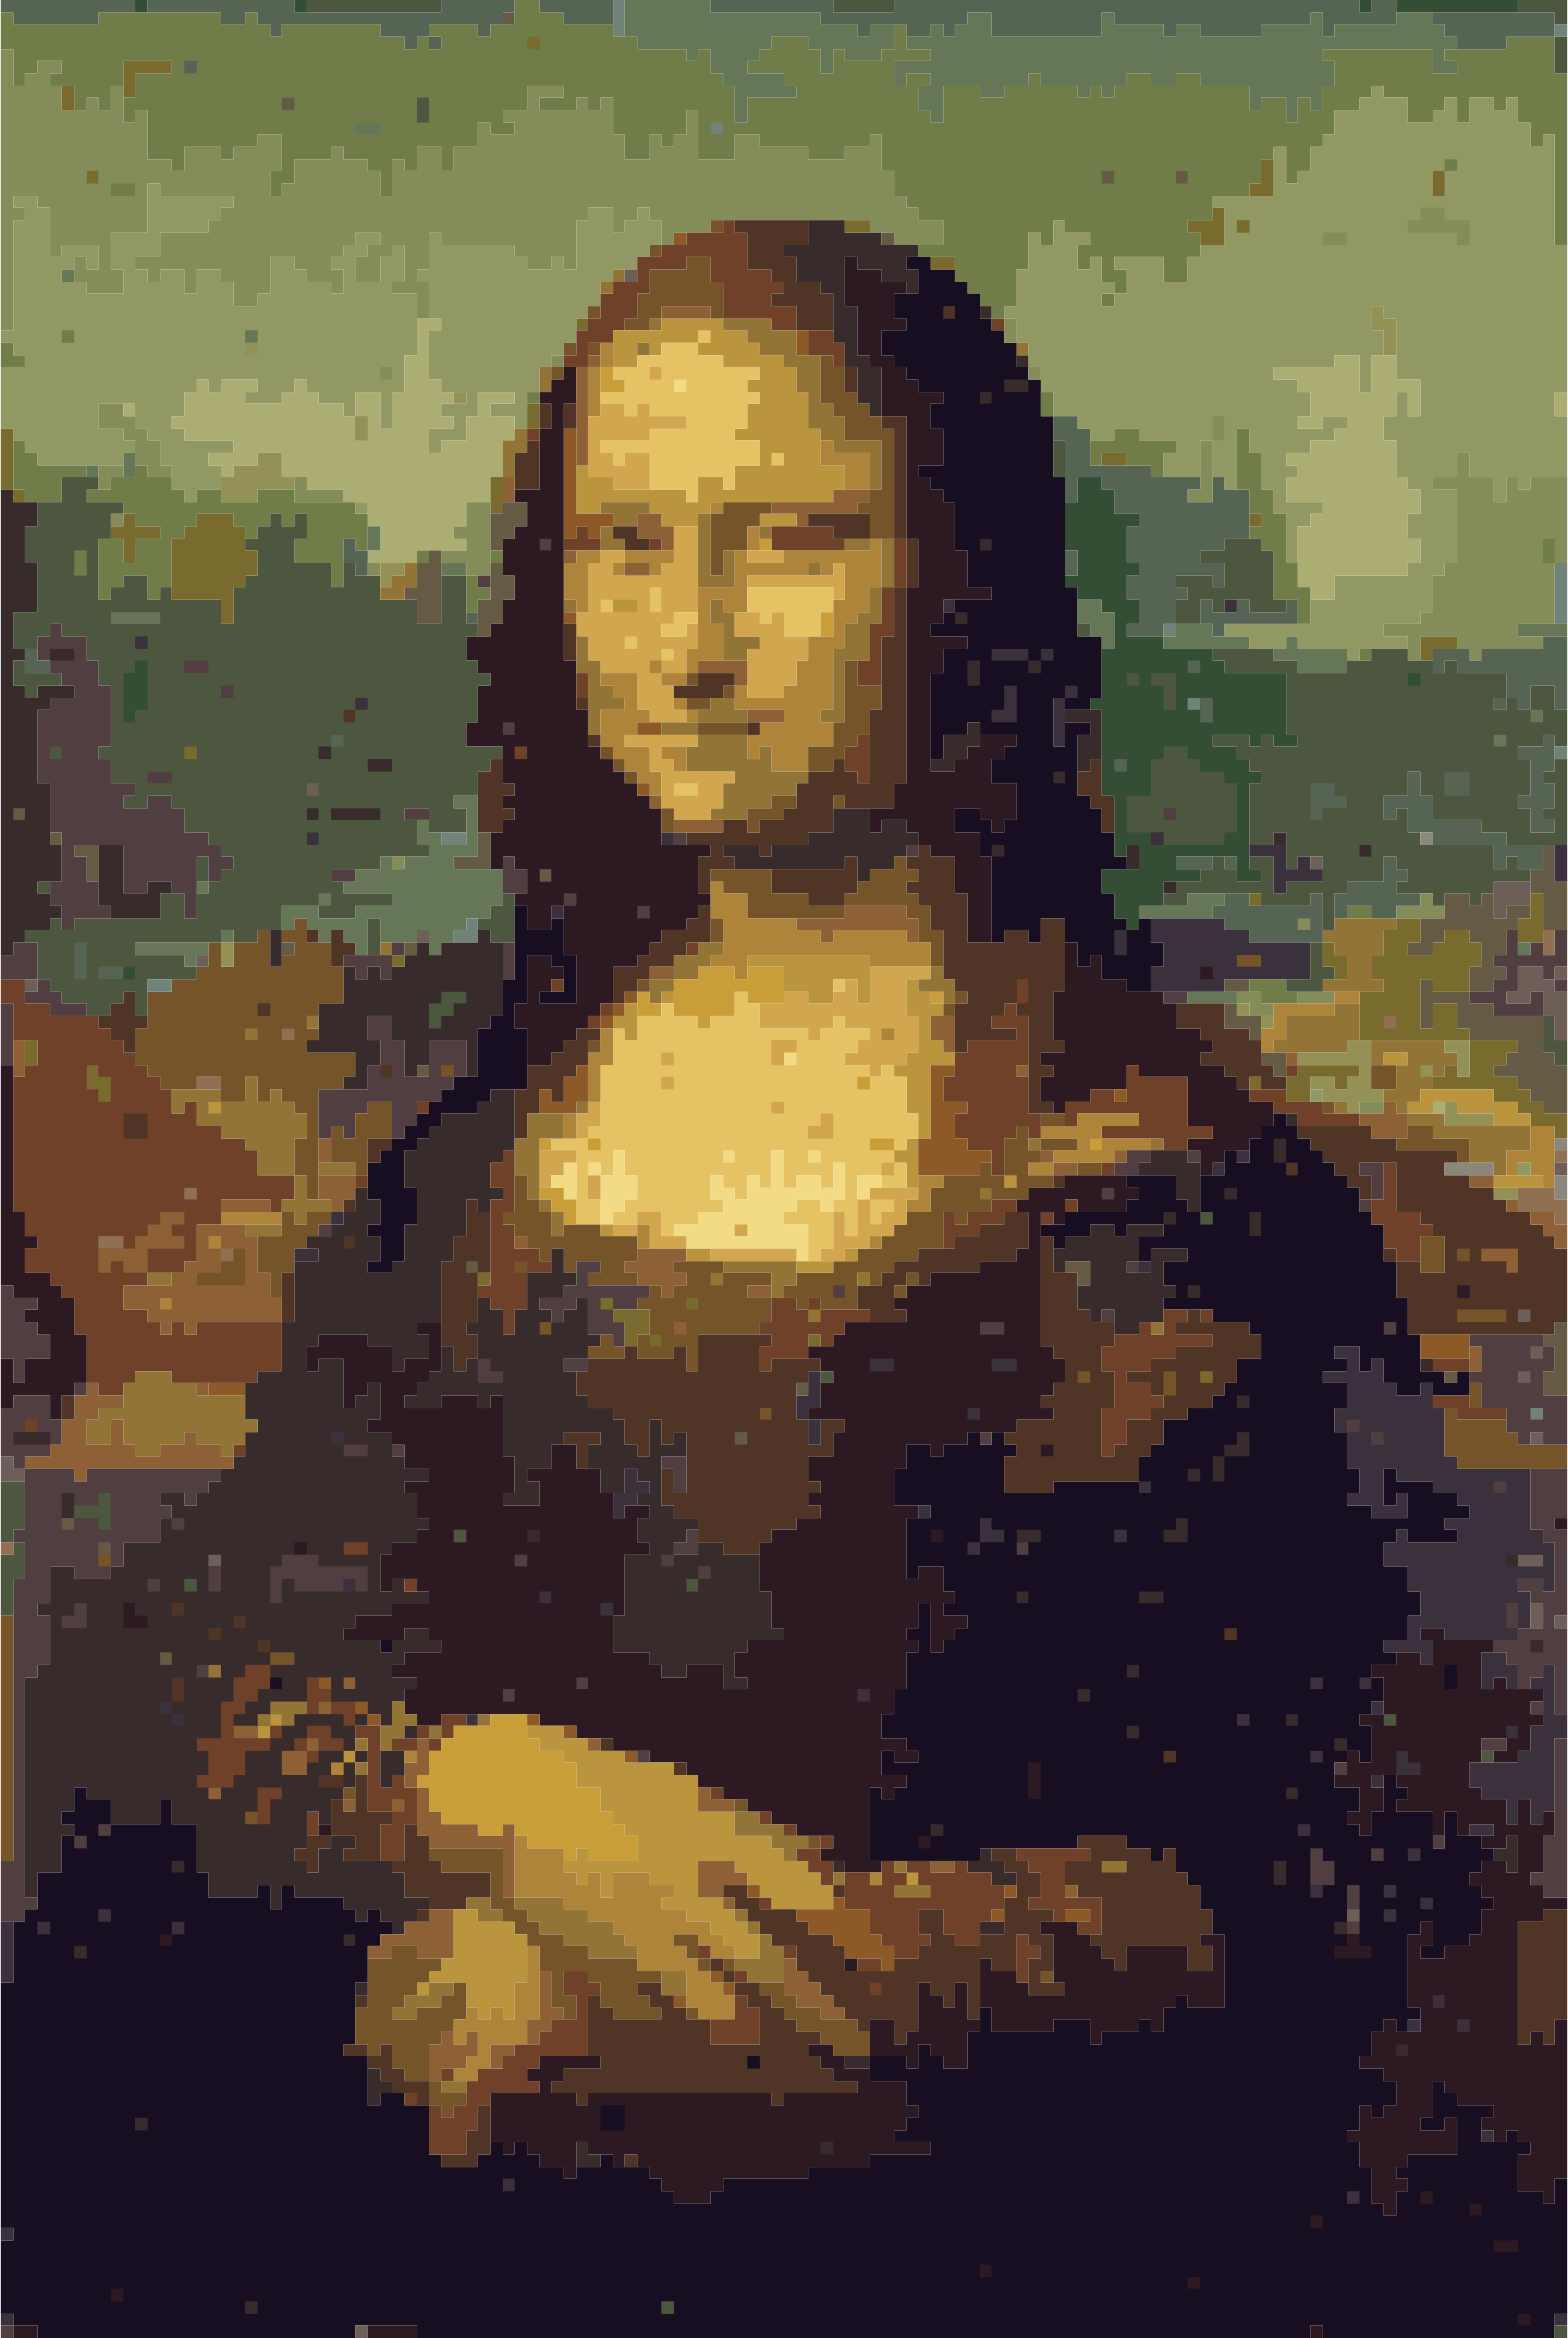 New Mona Lisa in the Pixel Age by wallpapergirl